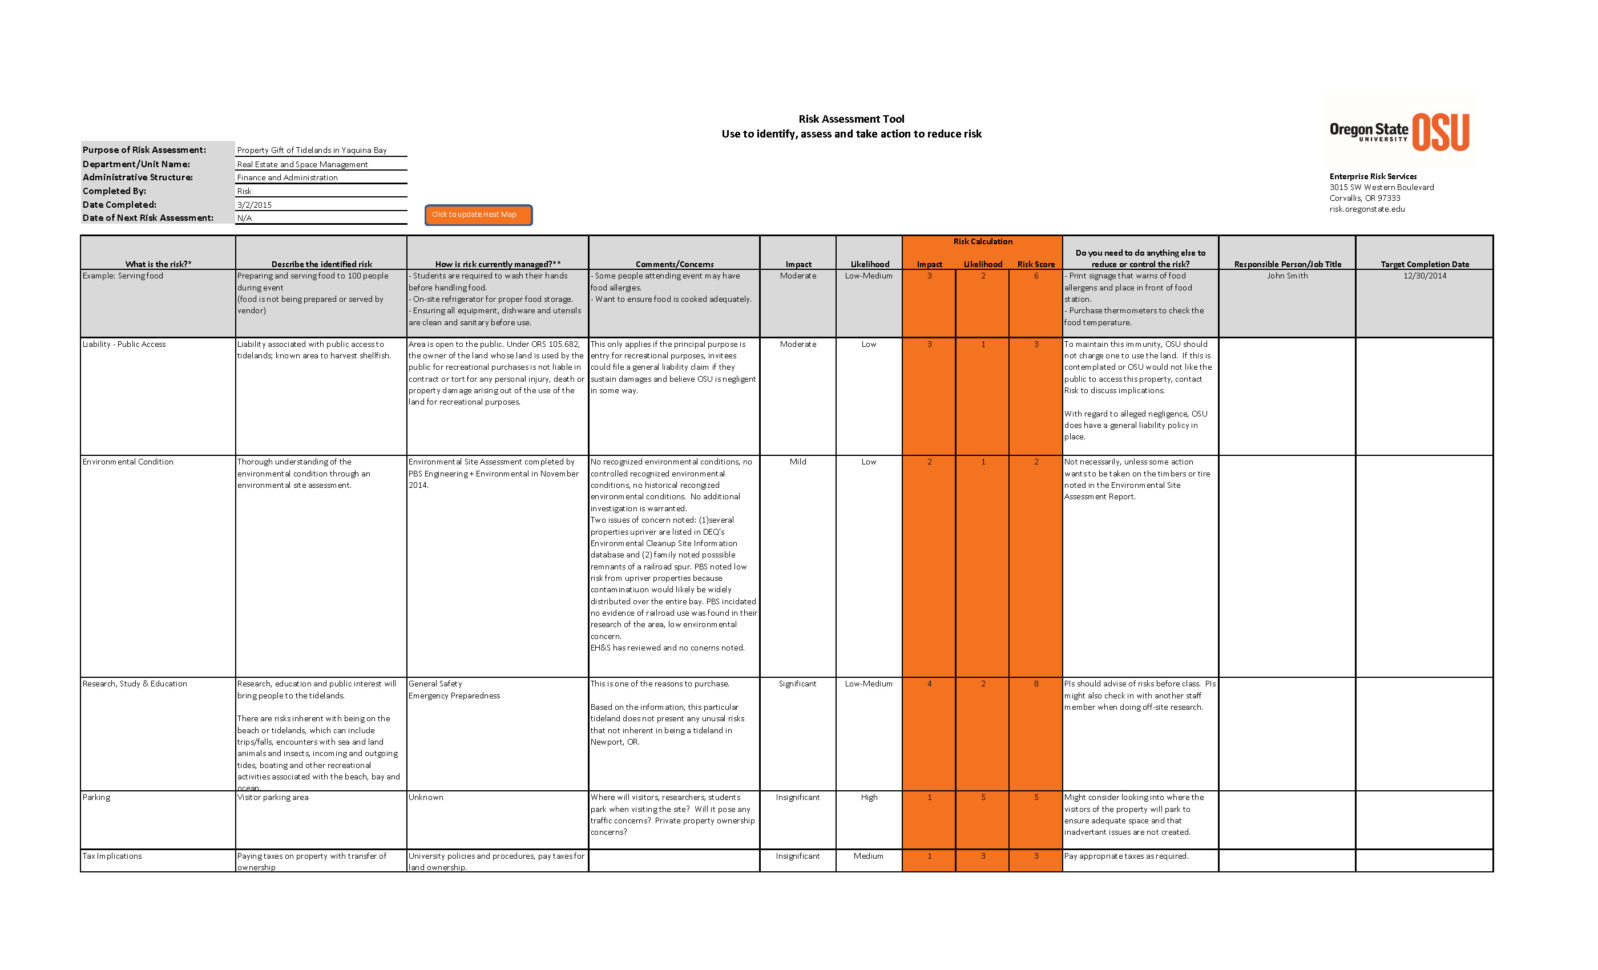 Risk Management Spreadsheet Template Pertaining To Risk Assessment Tool › Risk Management